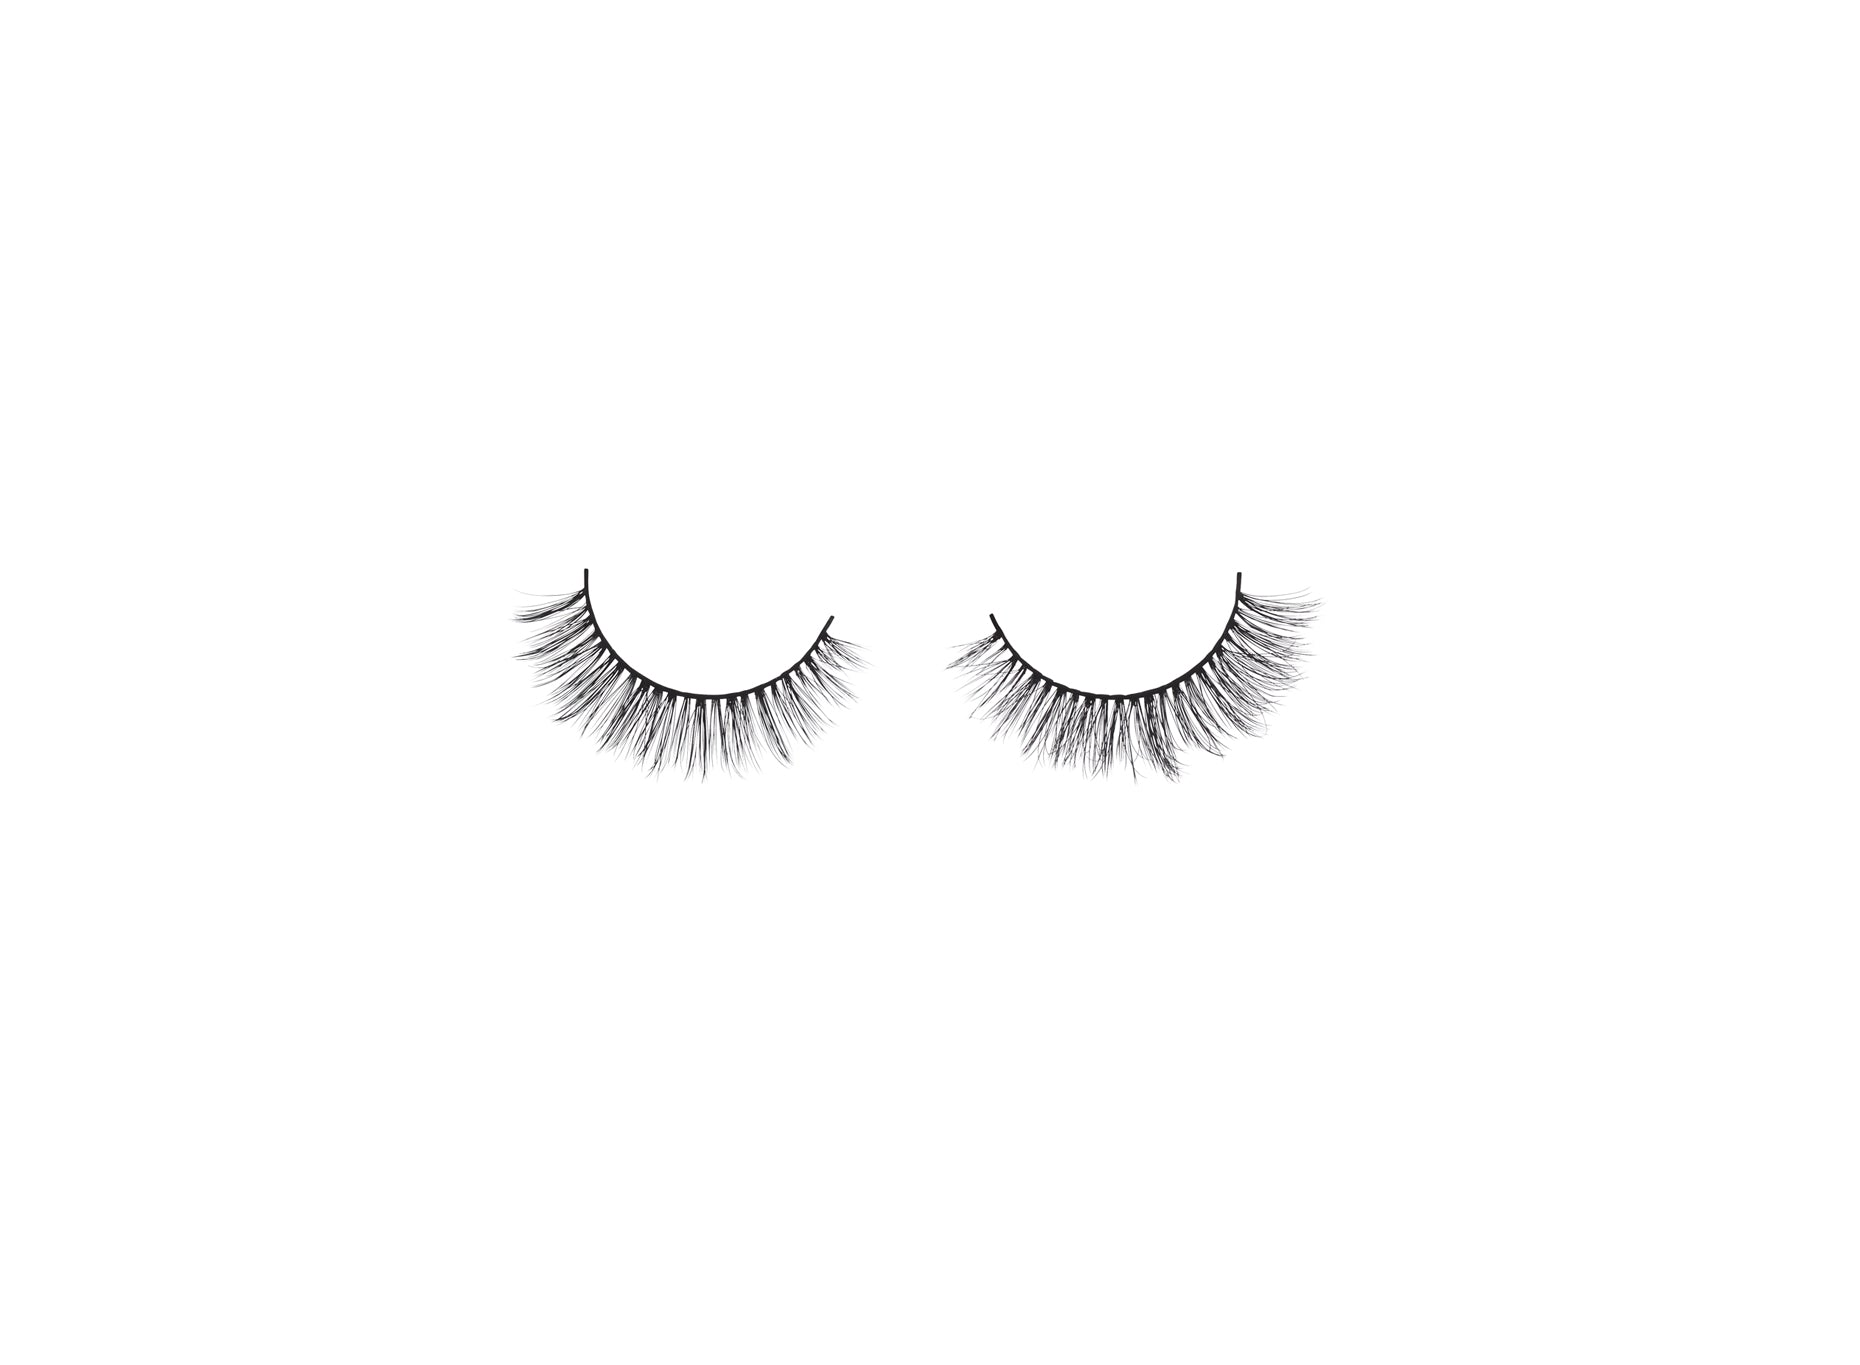 thumbnail - feathery lashes from lash star beauty